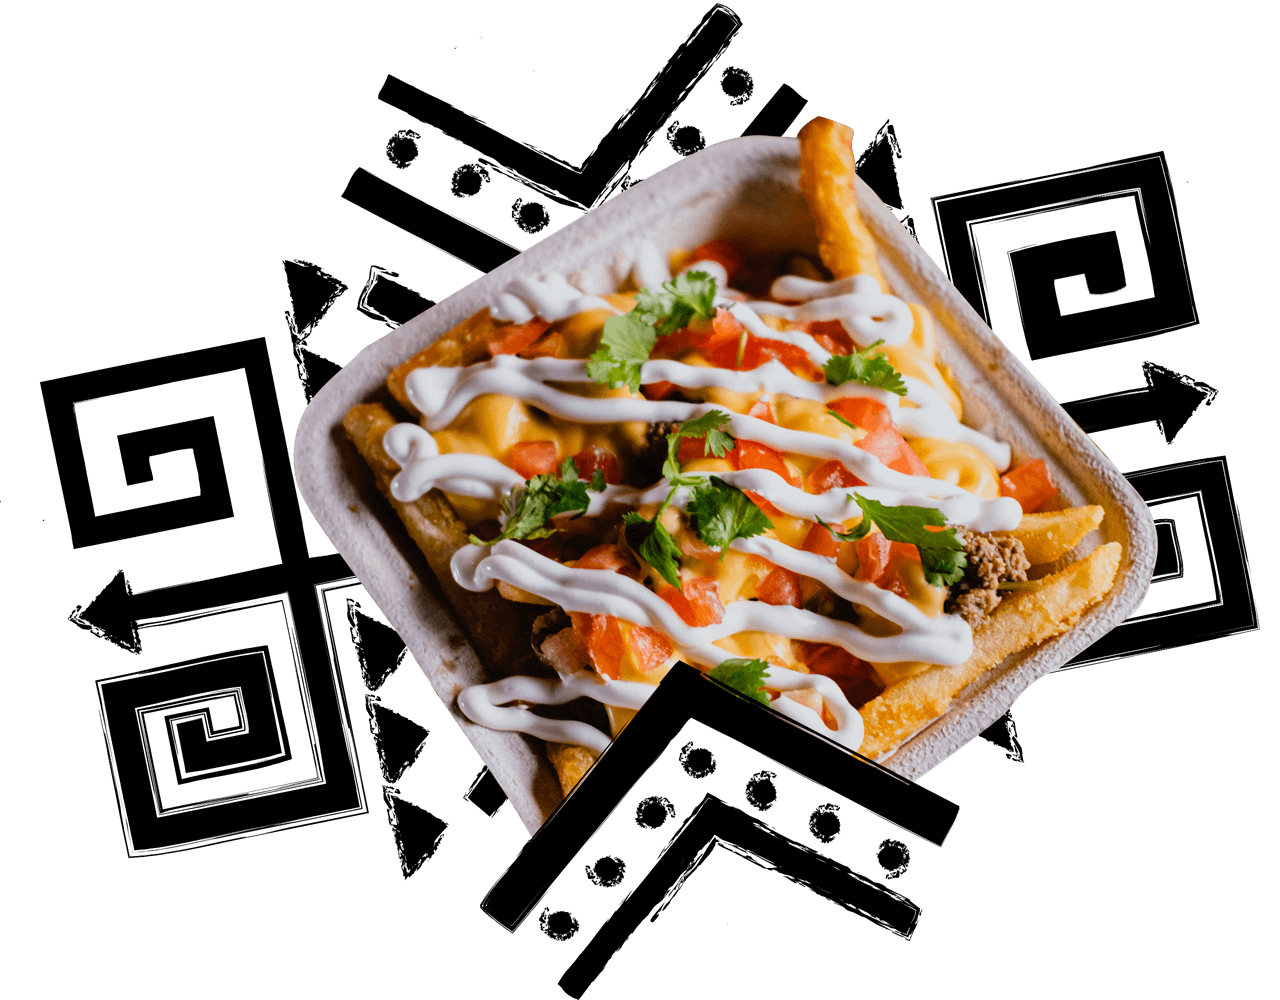 container with fries covered in toppings